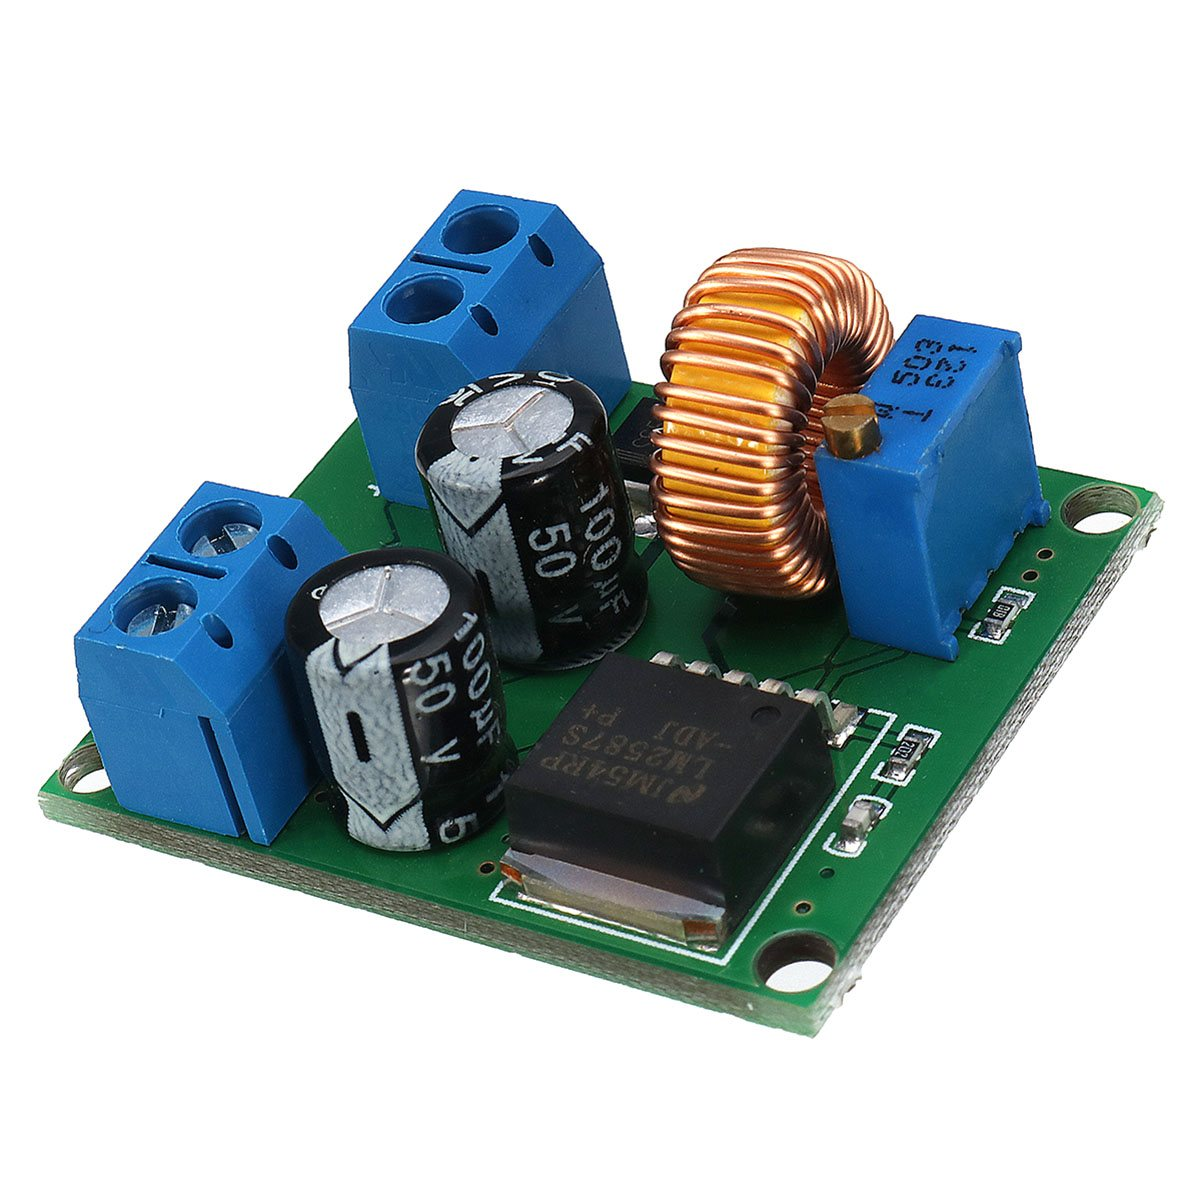 DC-DC 3V-35V To 4V-40V Adjustable Step Up Power Module 3V 5V 12V To 19V 24V 30V 36V High Power Boost Inverters Converter